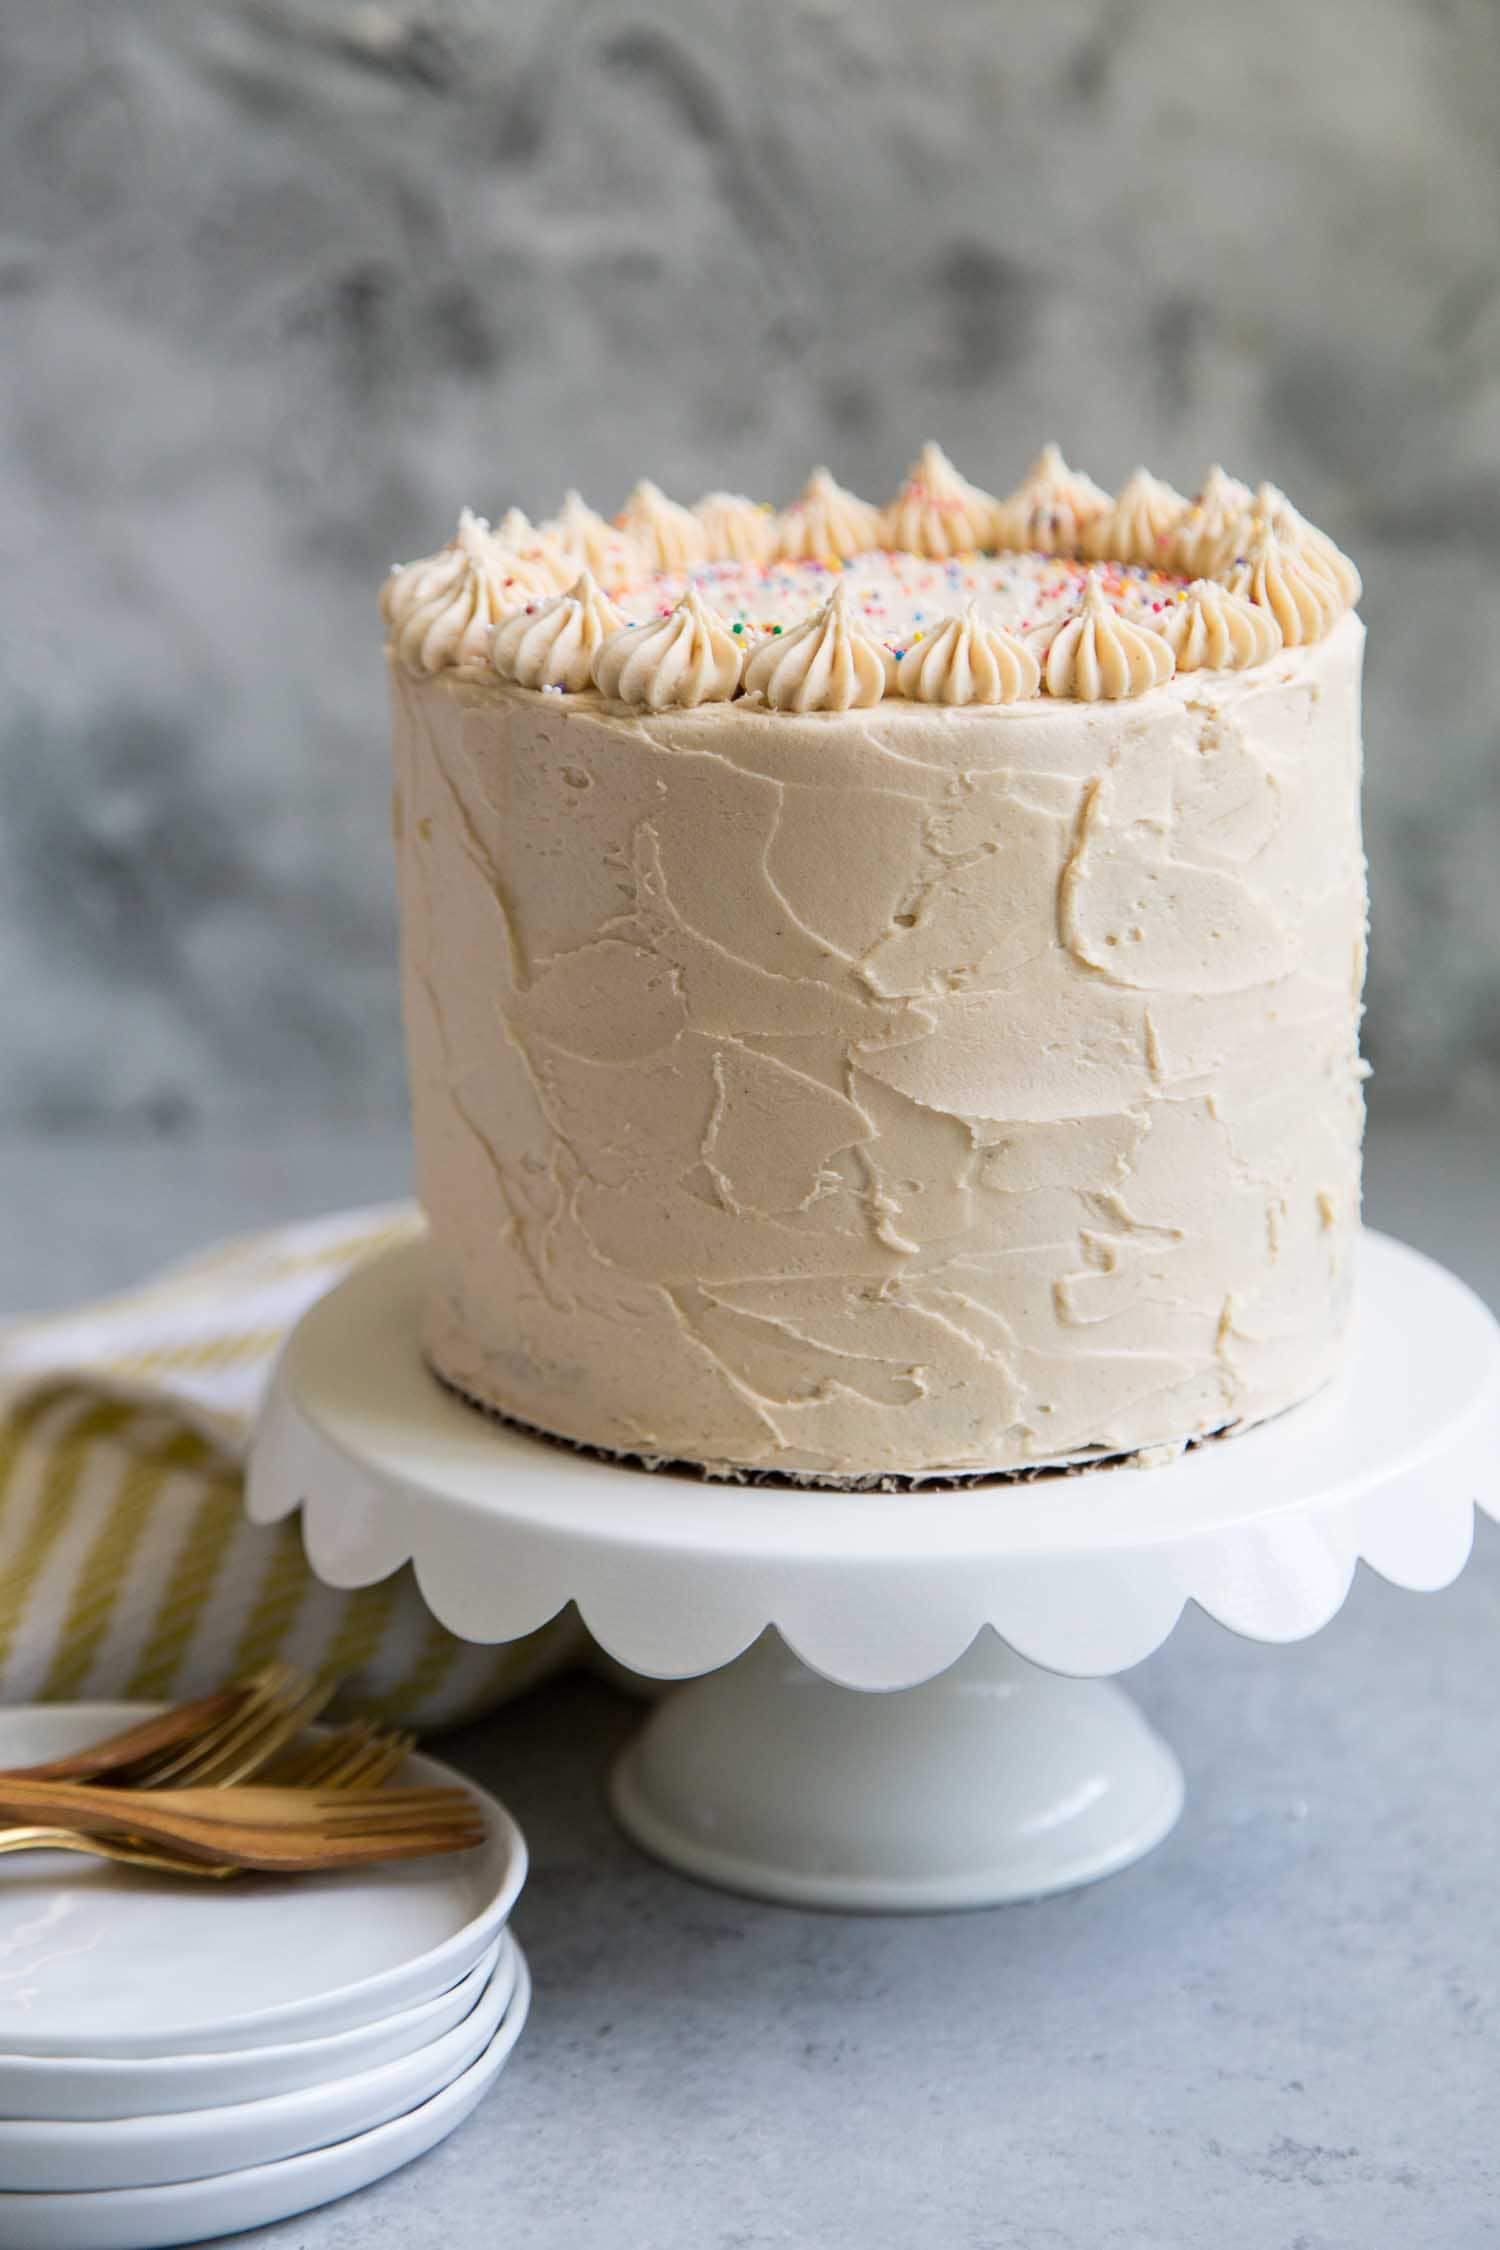 Peanut Butter Banana Layer Cake